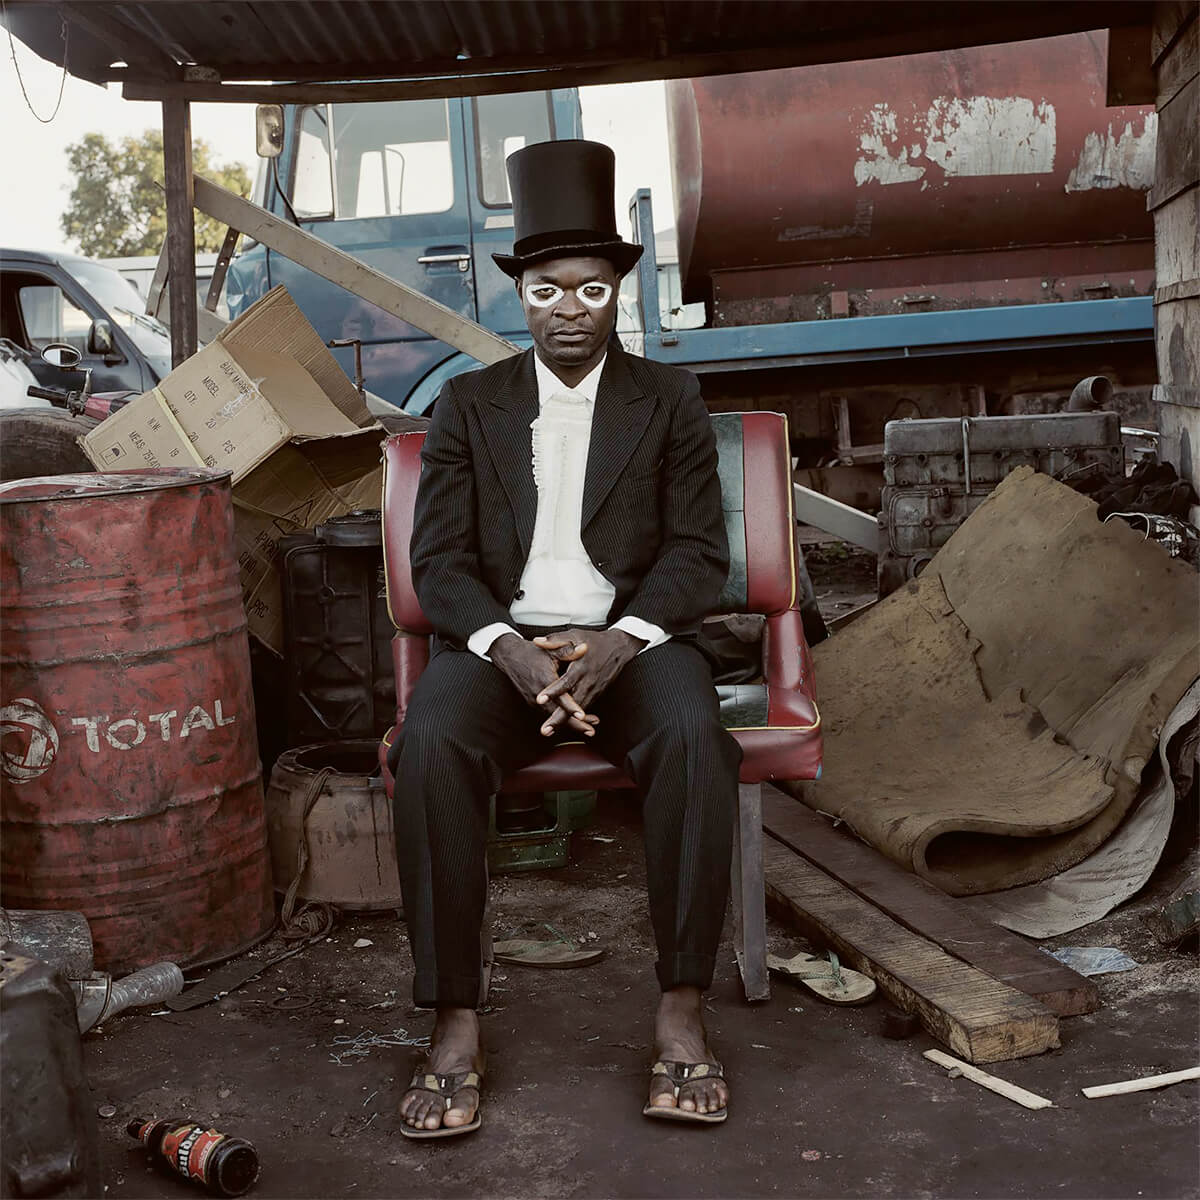 Pieter Hugo - From the series Nollywood, Emeka Onu, Enugu, Nigeria, 2008 - Digital C-Print ©Pieter Hugo, Courtesy Yossi Milo Gallery